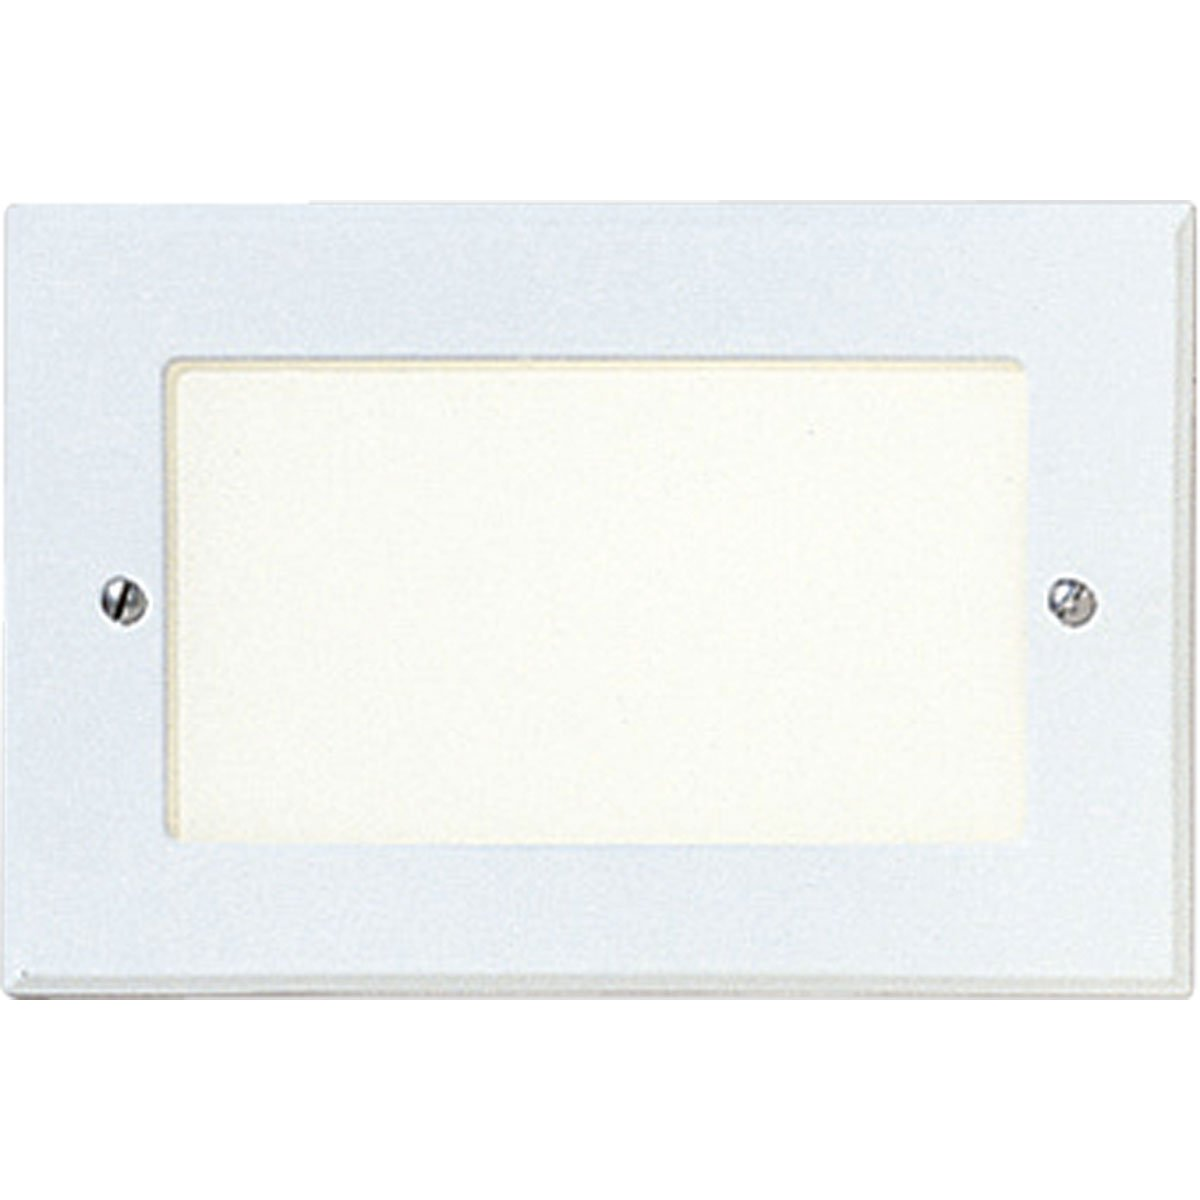 Progress Lighting P6824-30 1 Metal Housing with 2 Shatter-Resistant Faceplates For Both Sides Of Stud Wall with 3-1/2-Inch To 4-1/2-Inch For Indoor and Protected Outdoor Use, White